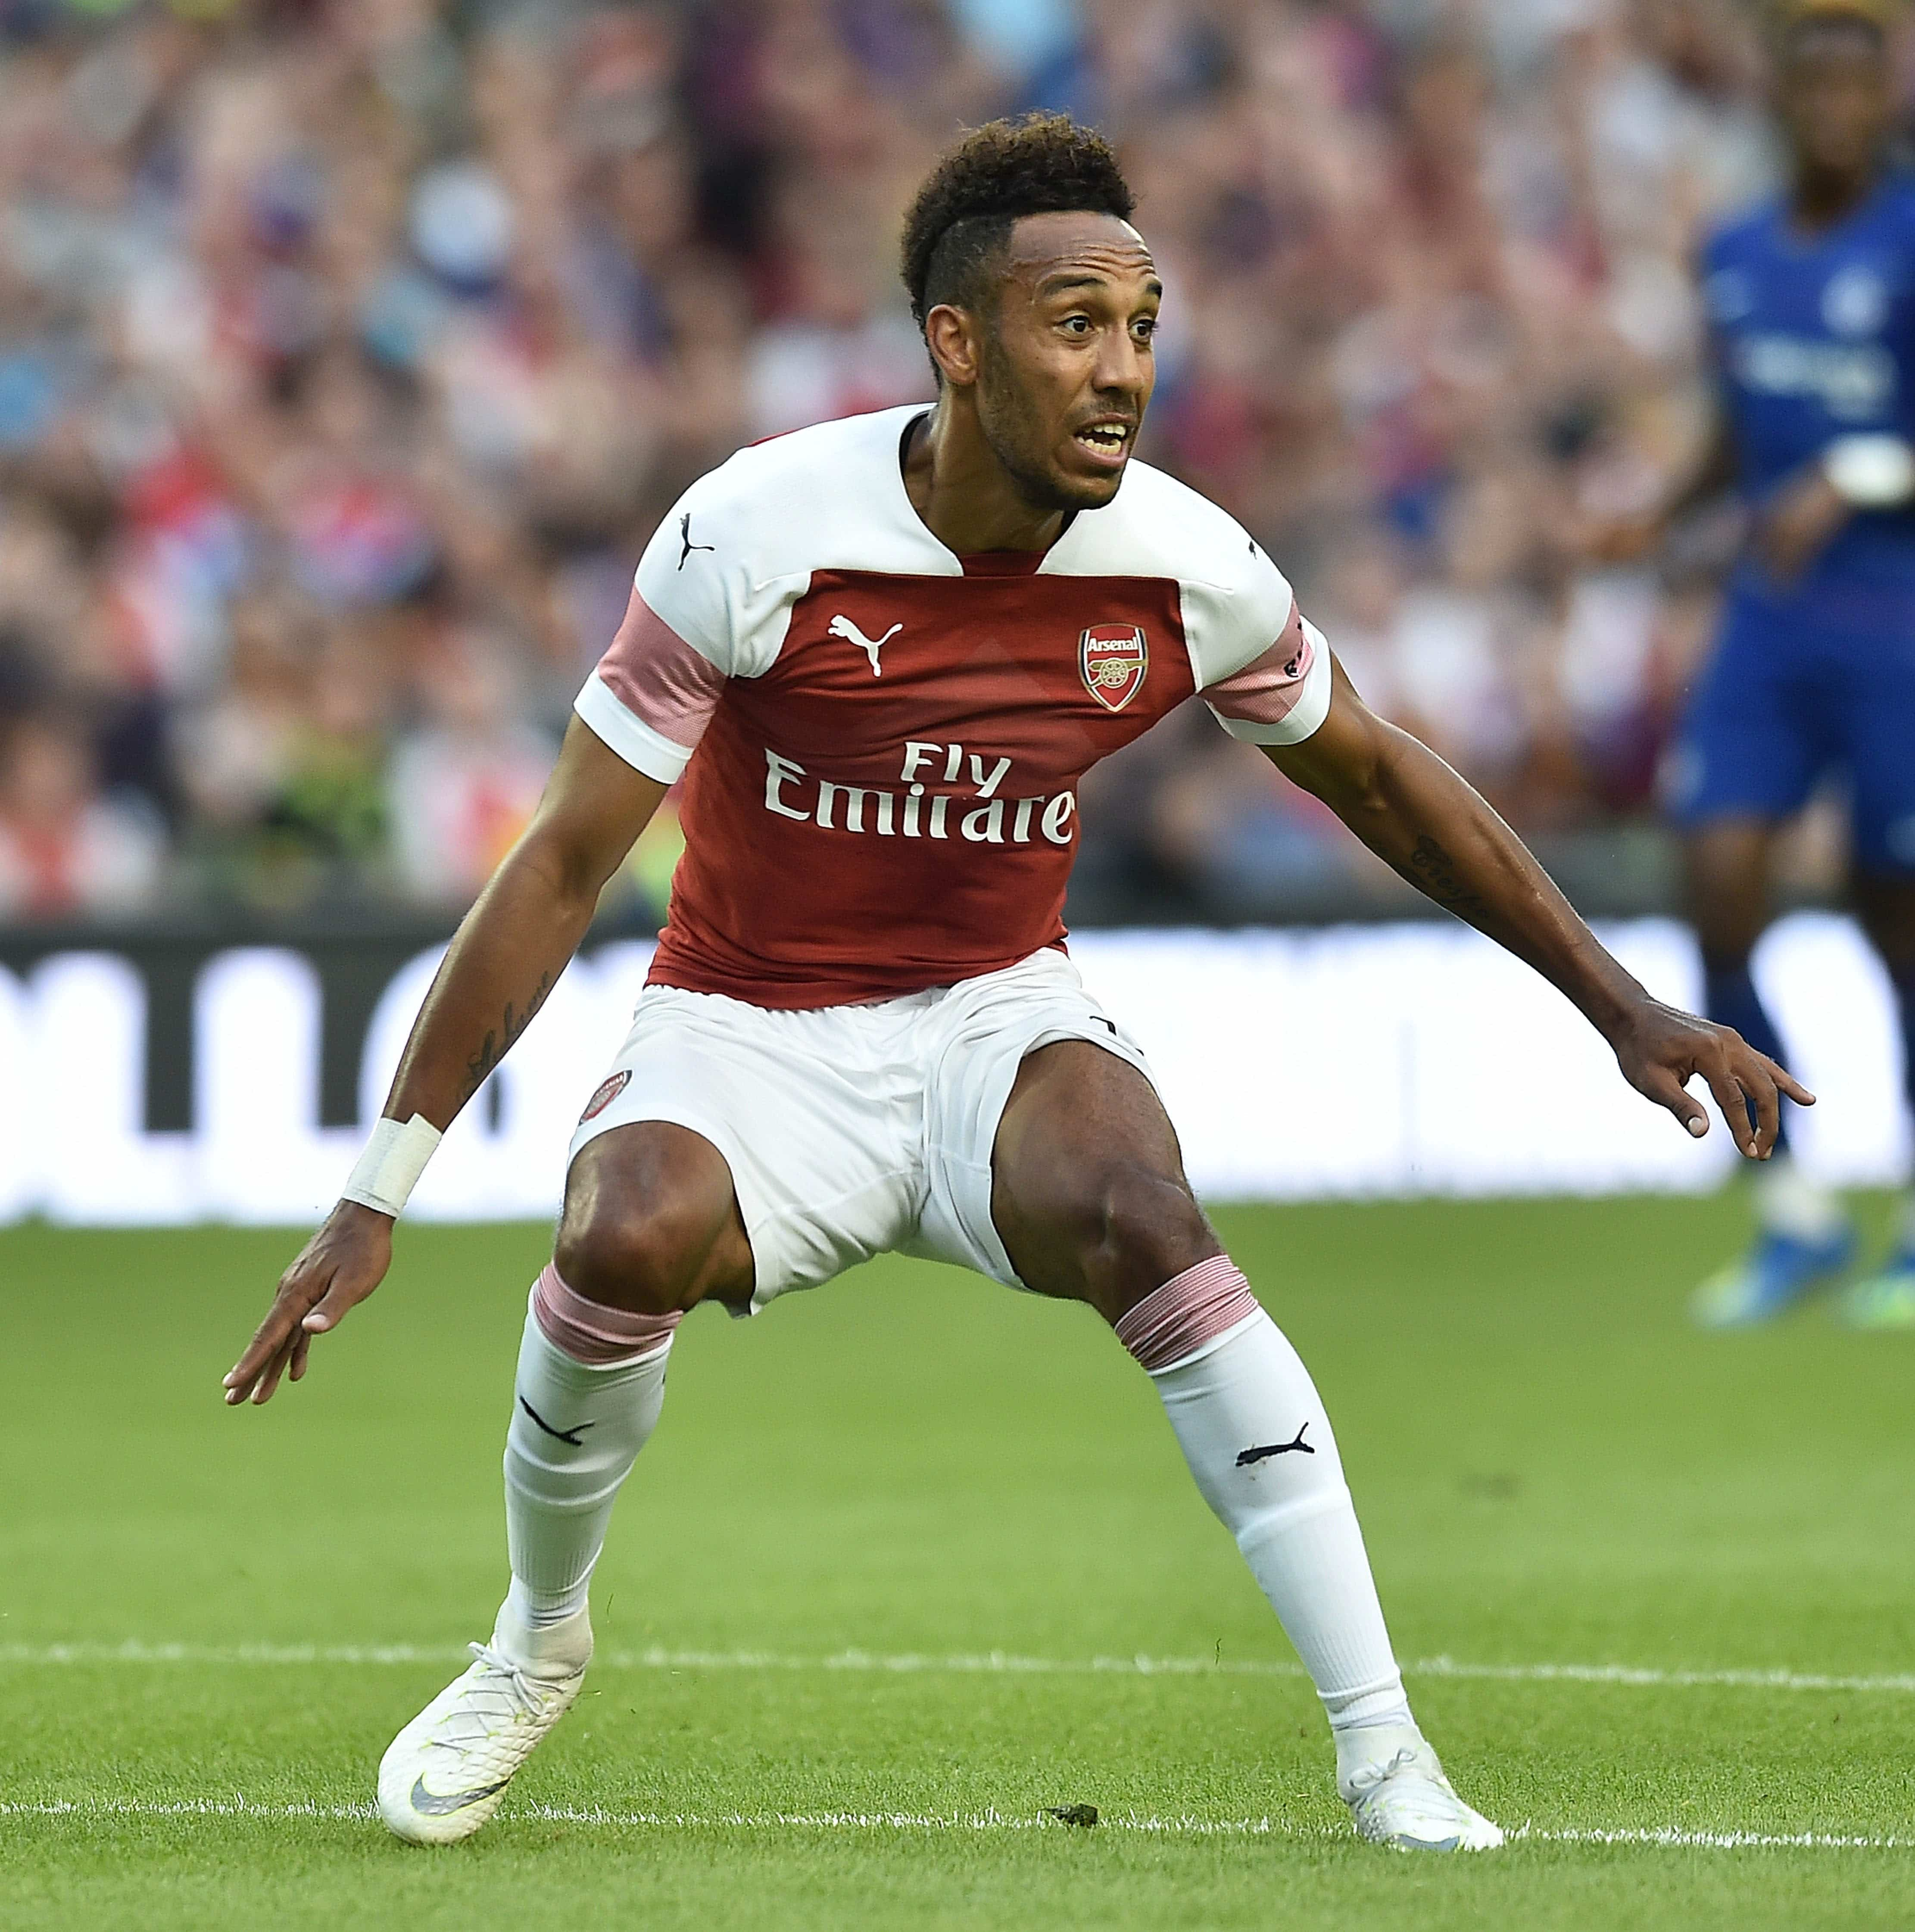 Pierre Emerick Aubamayeng has impressed since joining the Gunners in January this year